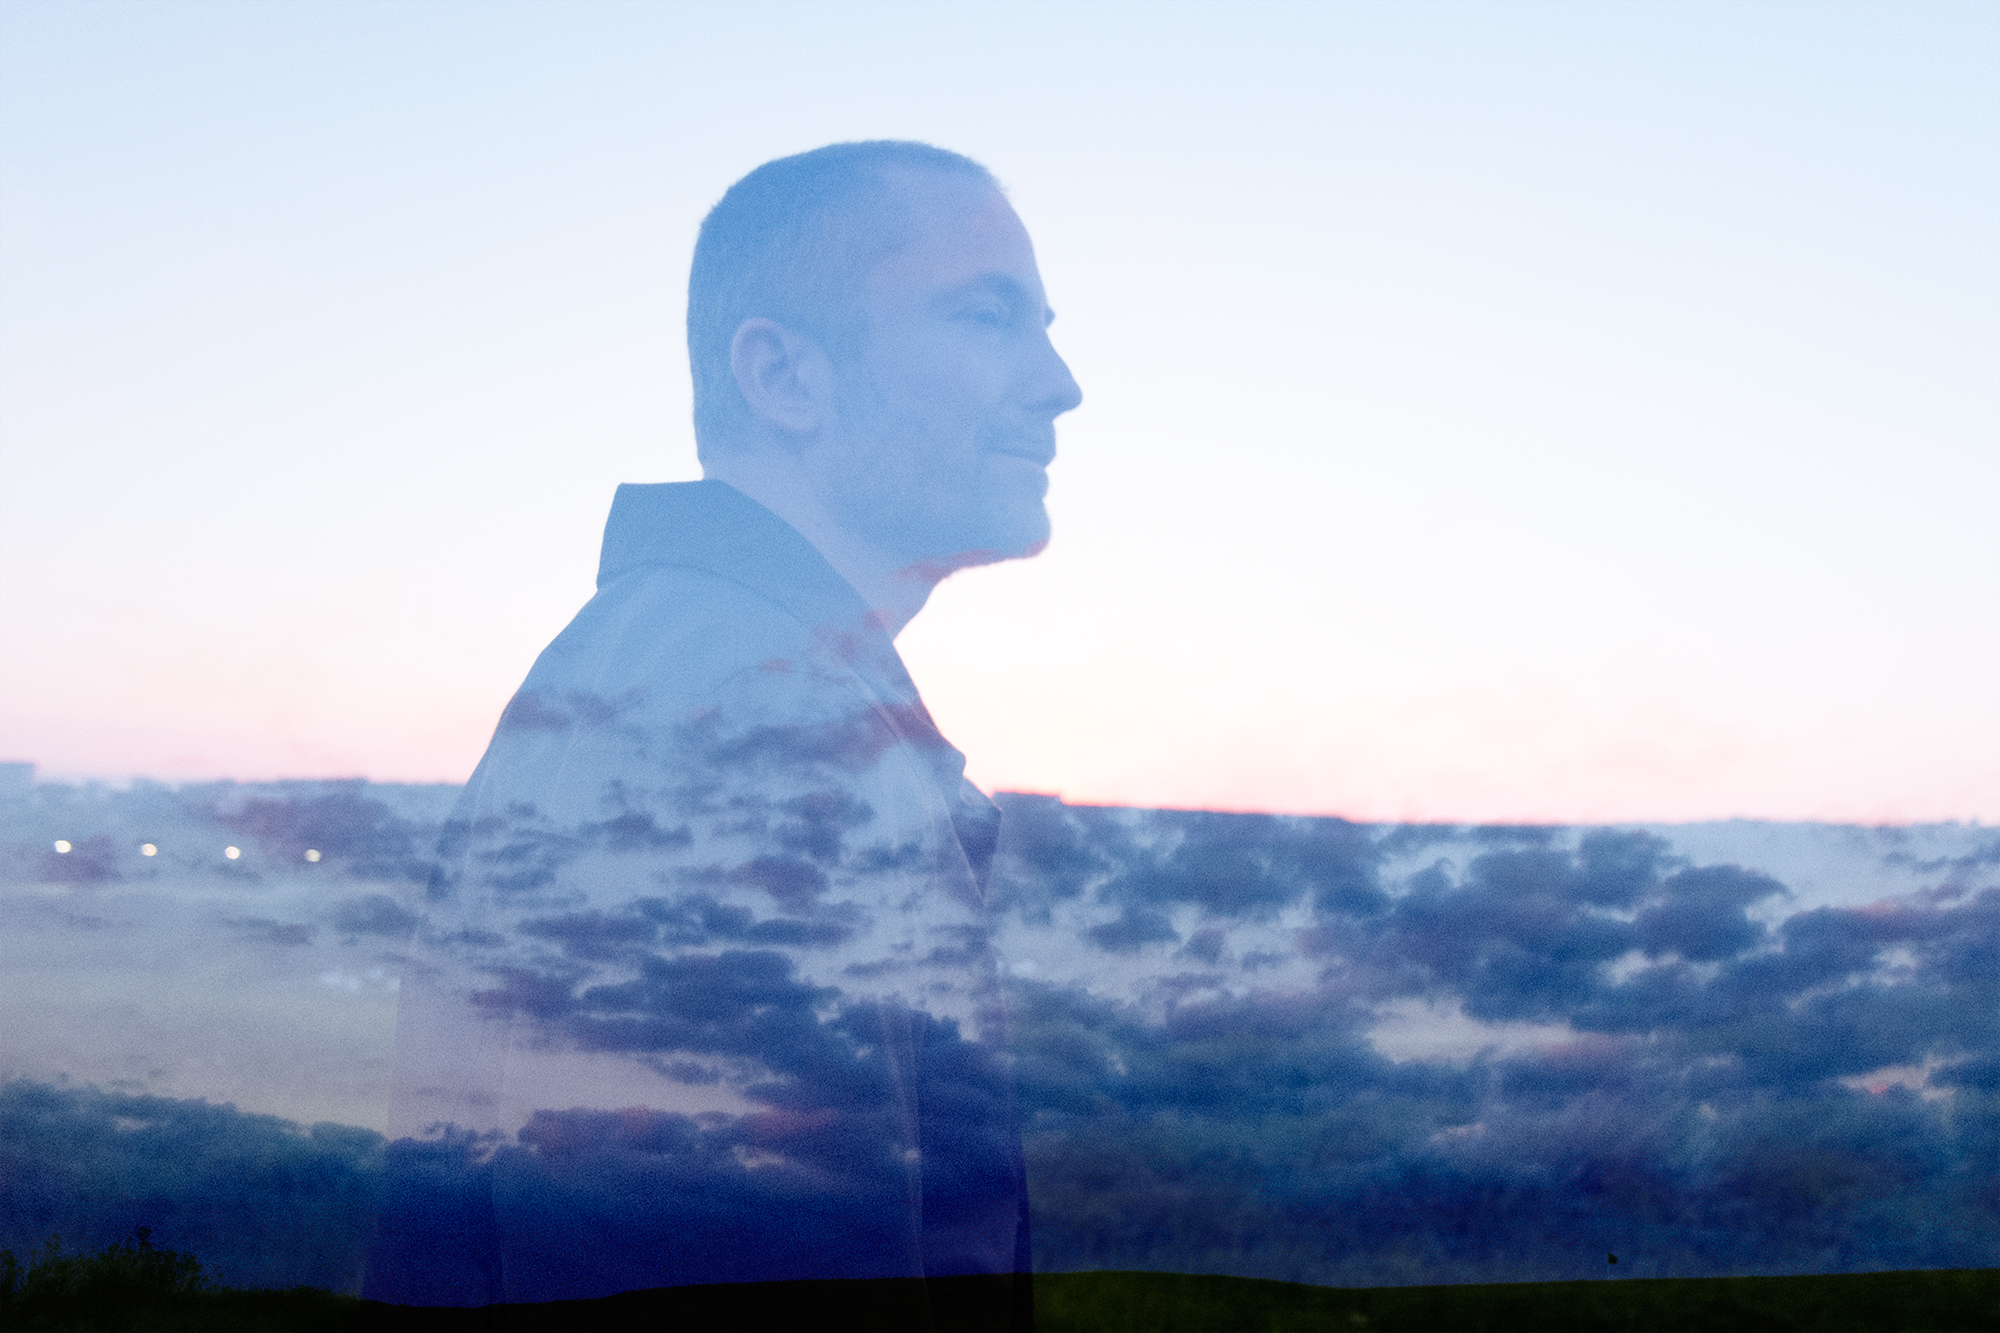 Profile of Aral, overlaid on purple and blue clouds in the sky